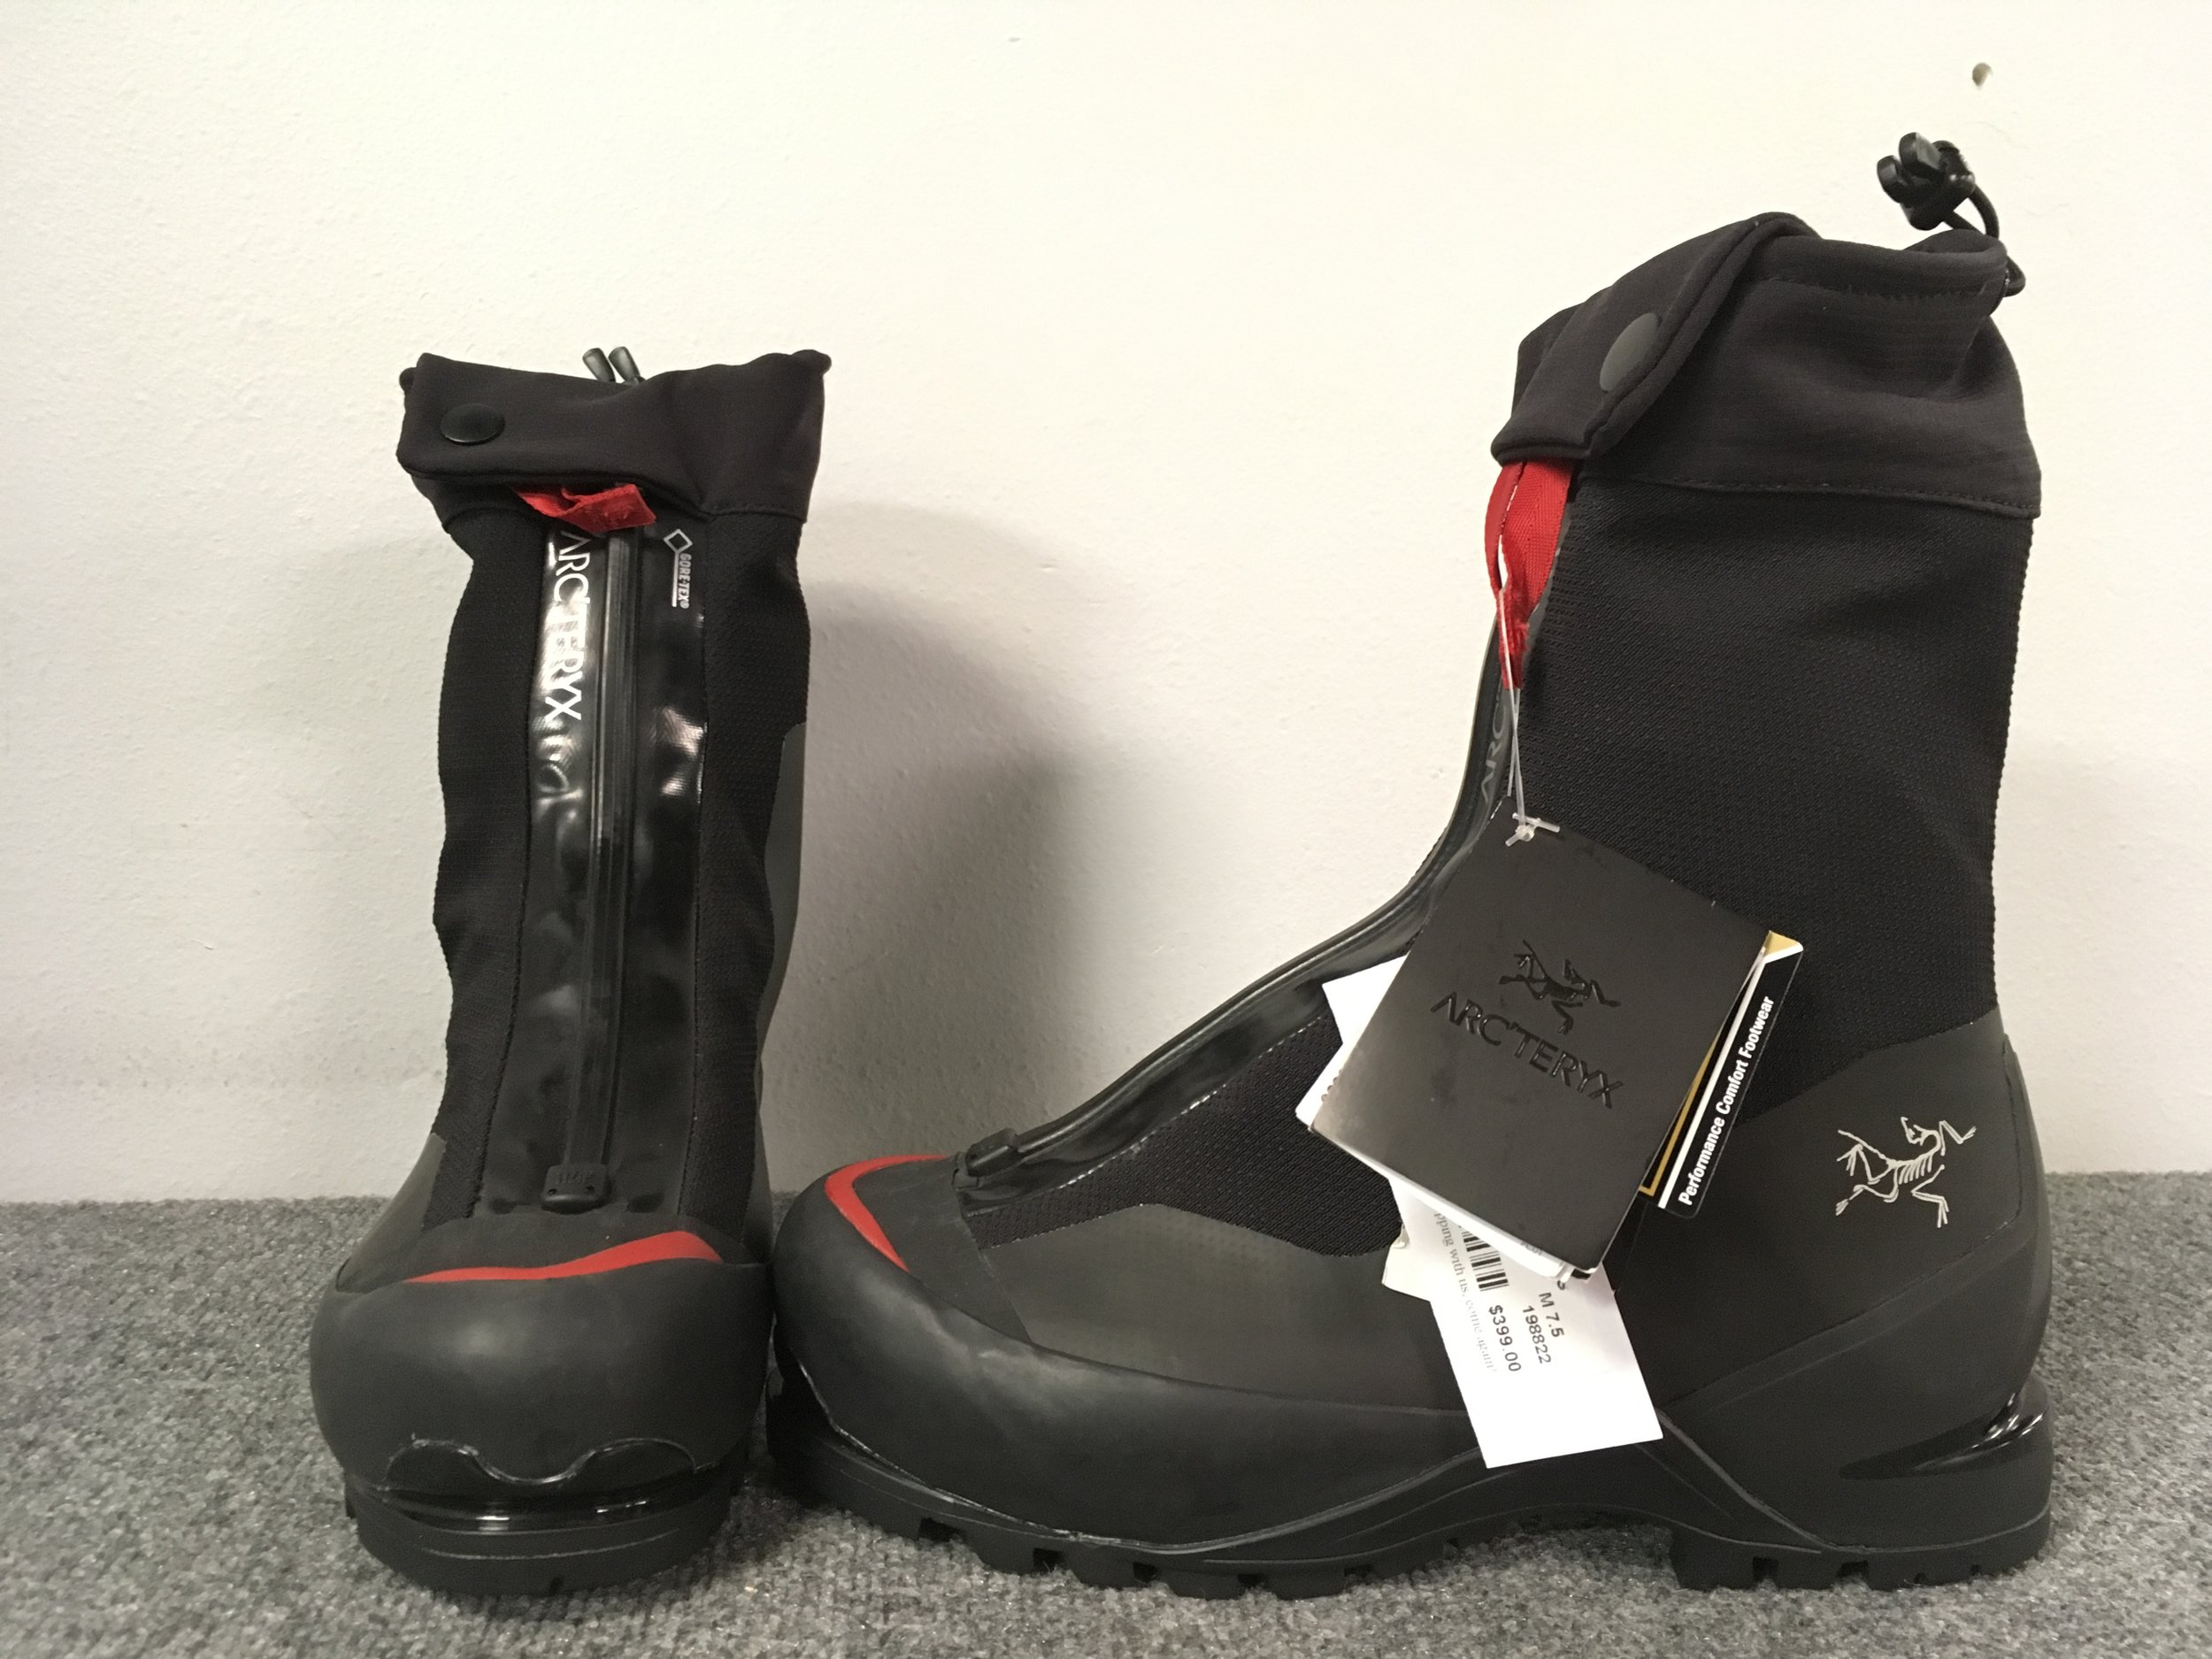 This boot is insane! The Arcteryx Acrux AR is designed to conquer any terrain you throw at it be it ice, rock scrambles, or mixed climbing. Retail is listed at $750 but we have it priced at $399! The size is a 7.5.